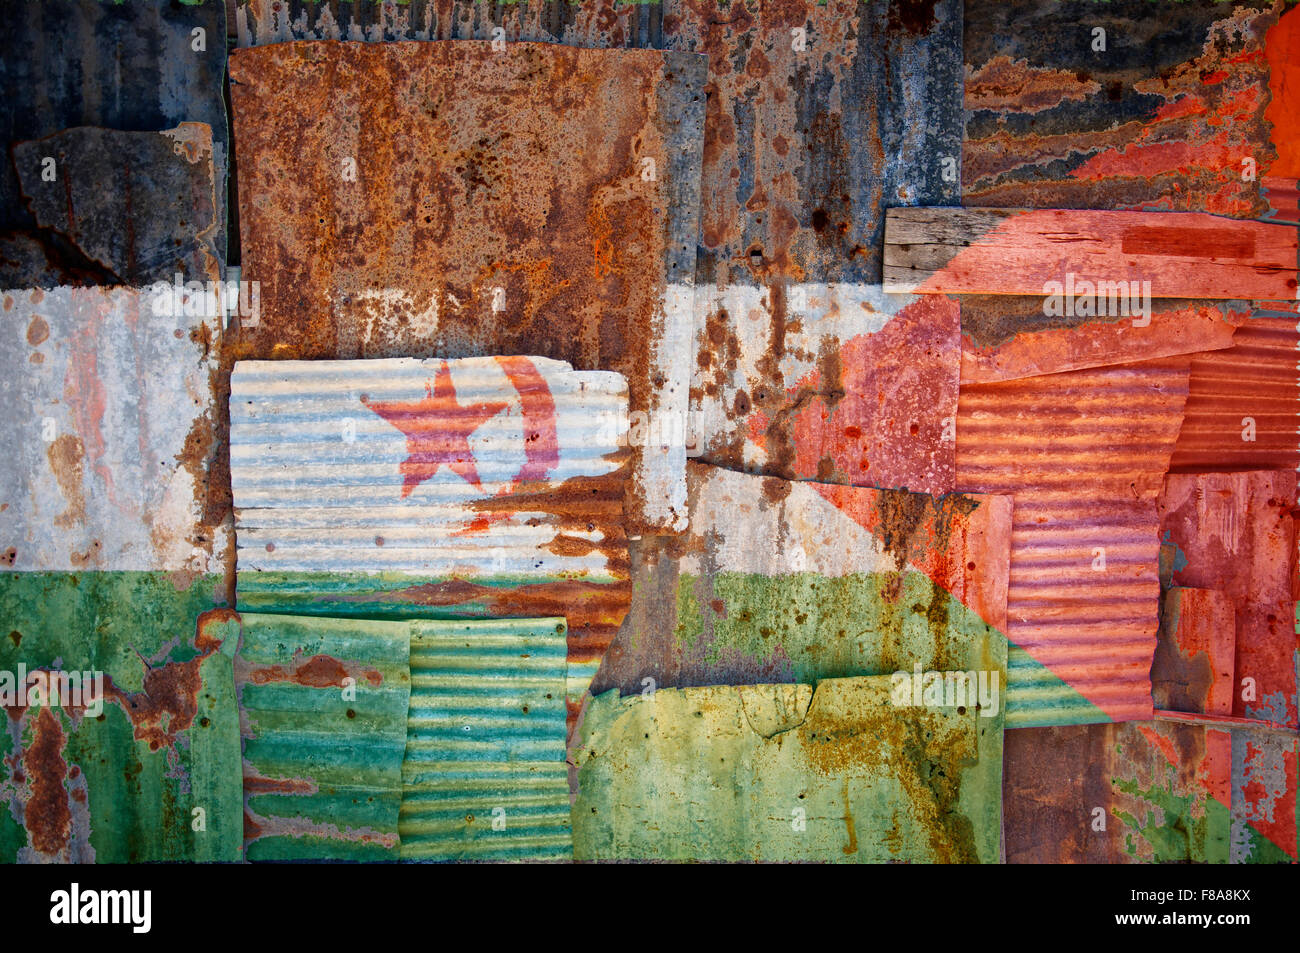 An abstract background image of the flag of Western Sahara painted on to rusty corrugated iron sheets overlapping - Stock Image